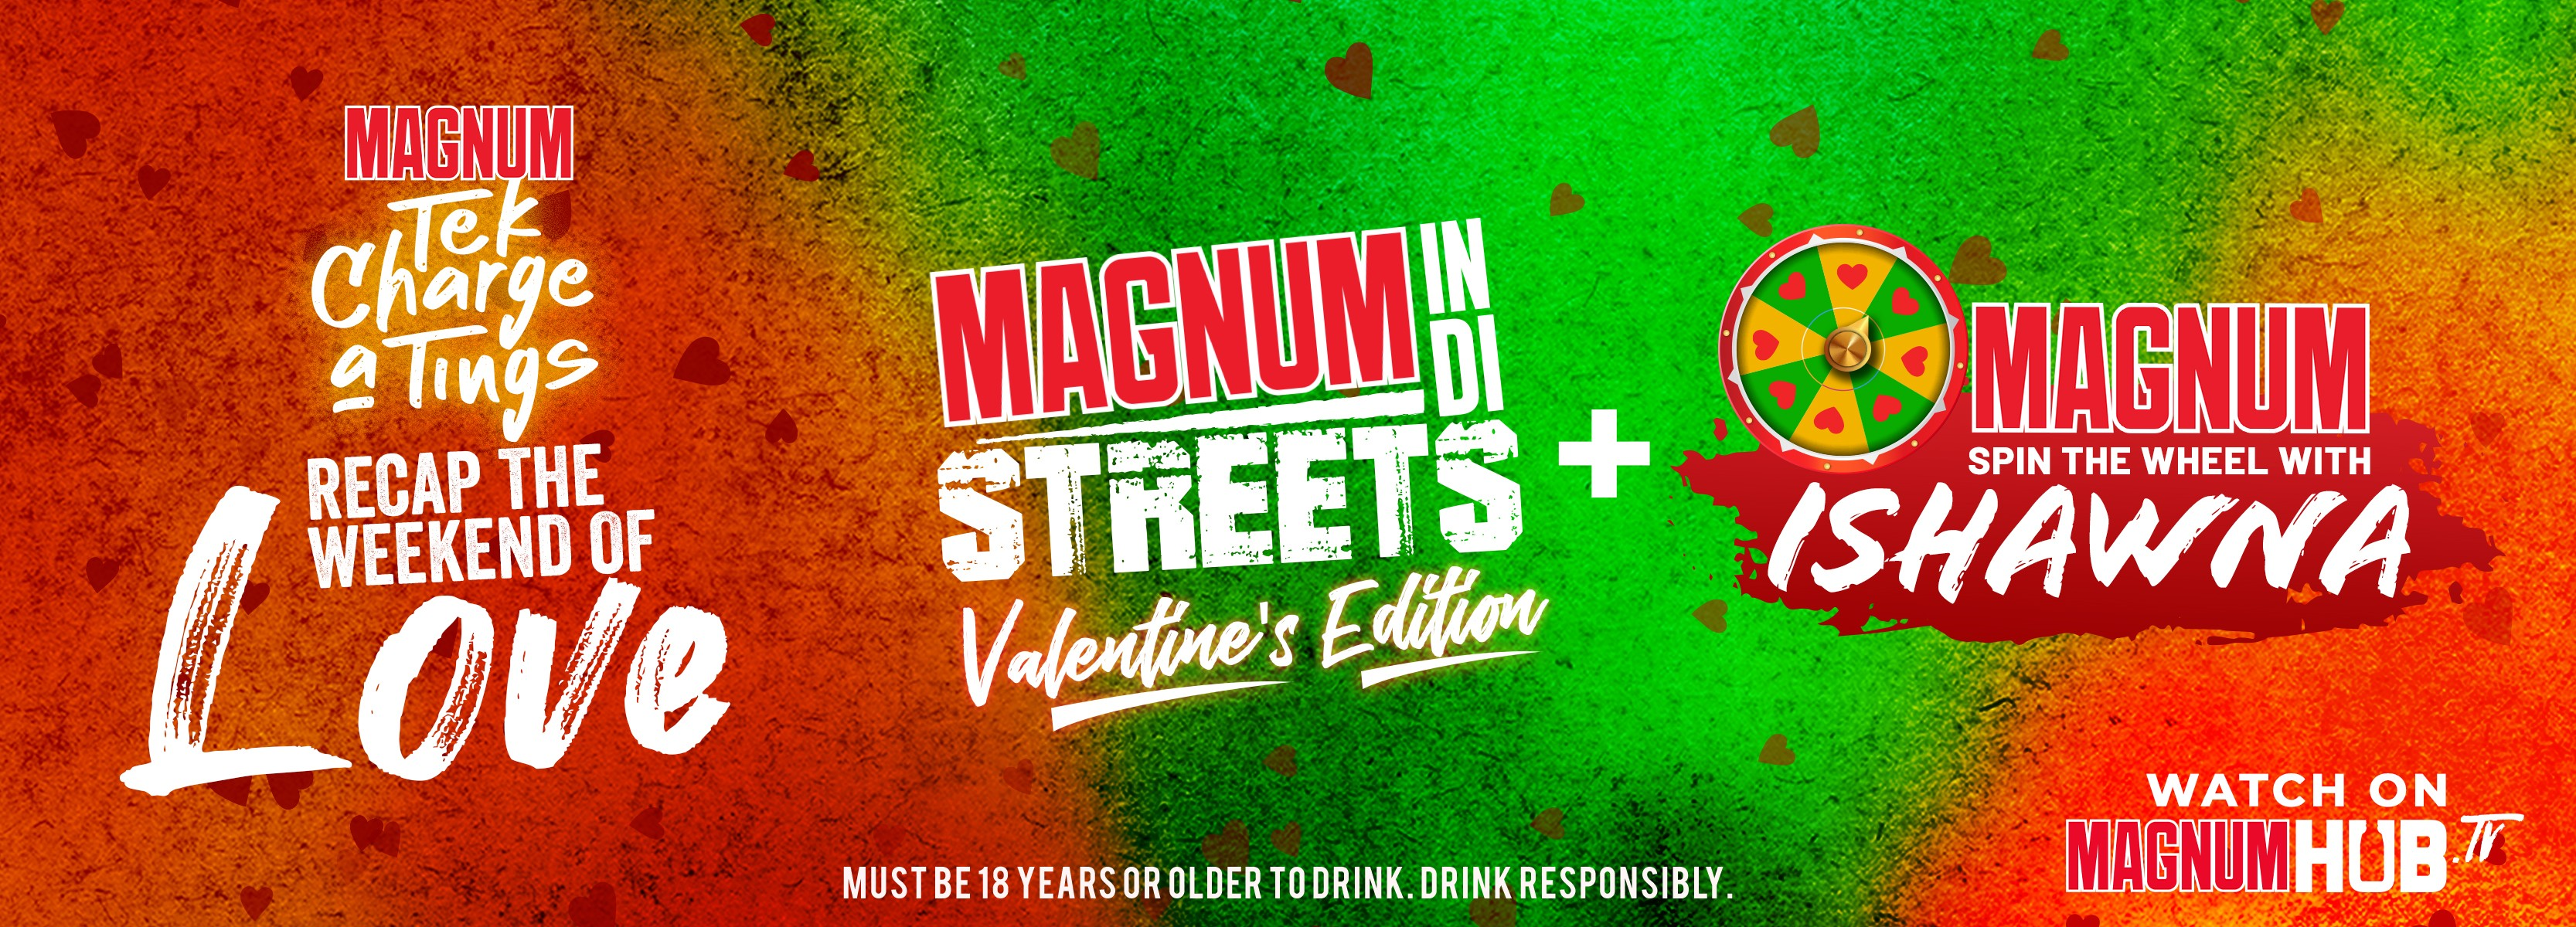 Click here to watch the recap Magnum in the Streets Valentines Edition